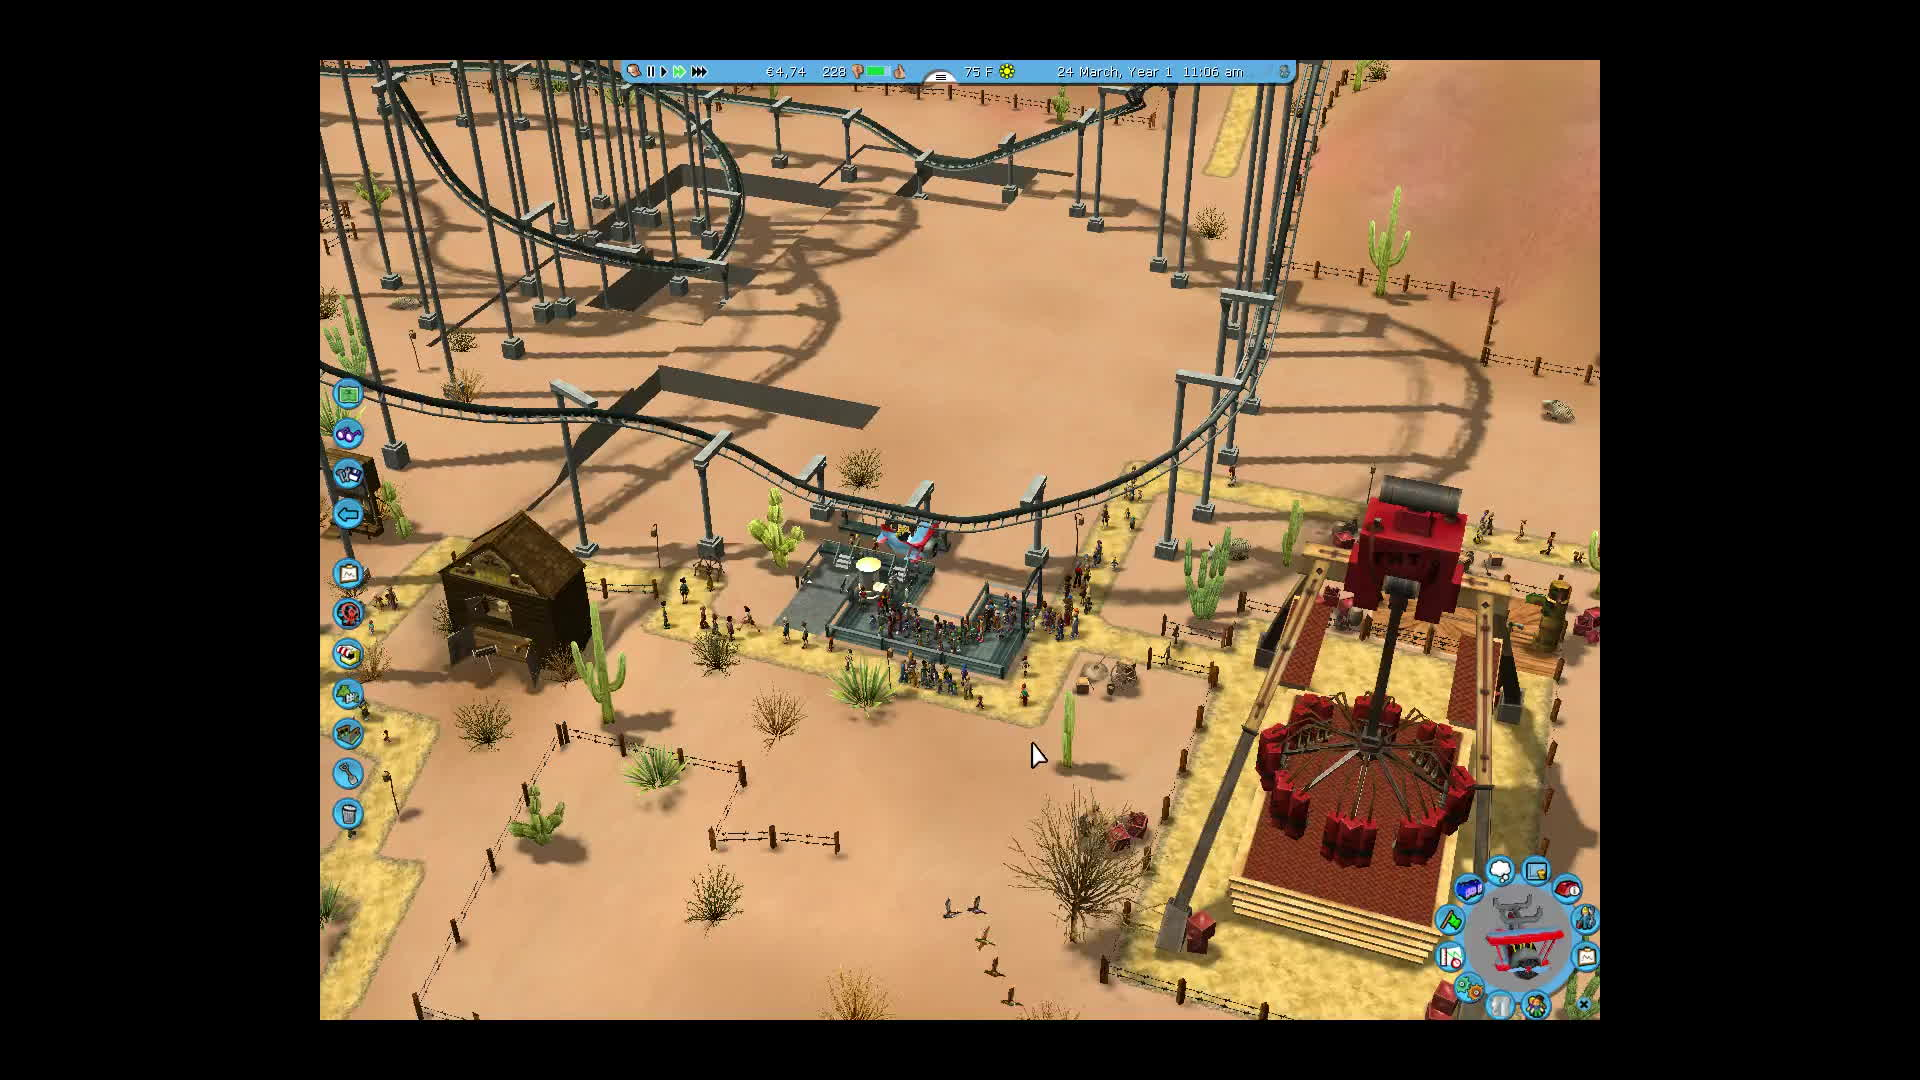 rc tycoon, Best Rollarcoaster Ever GIFs